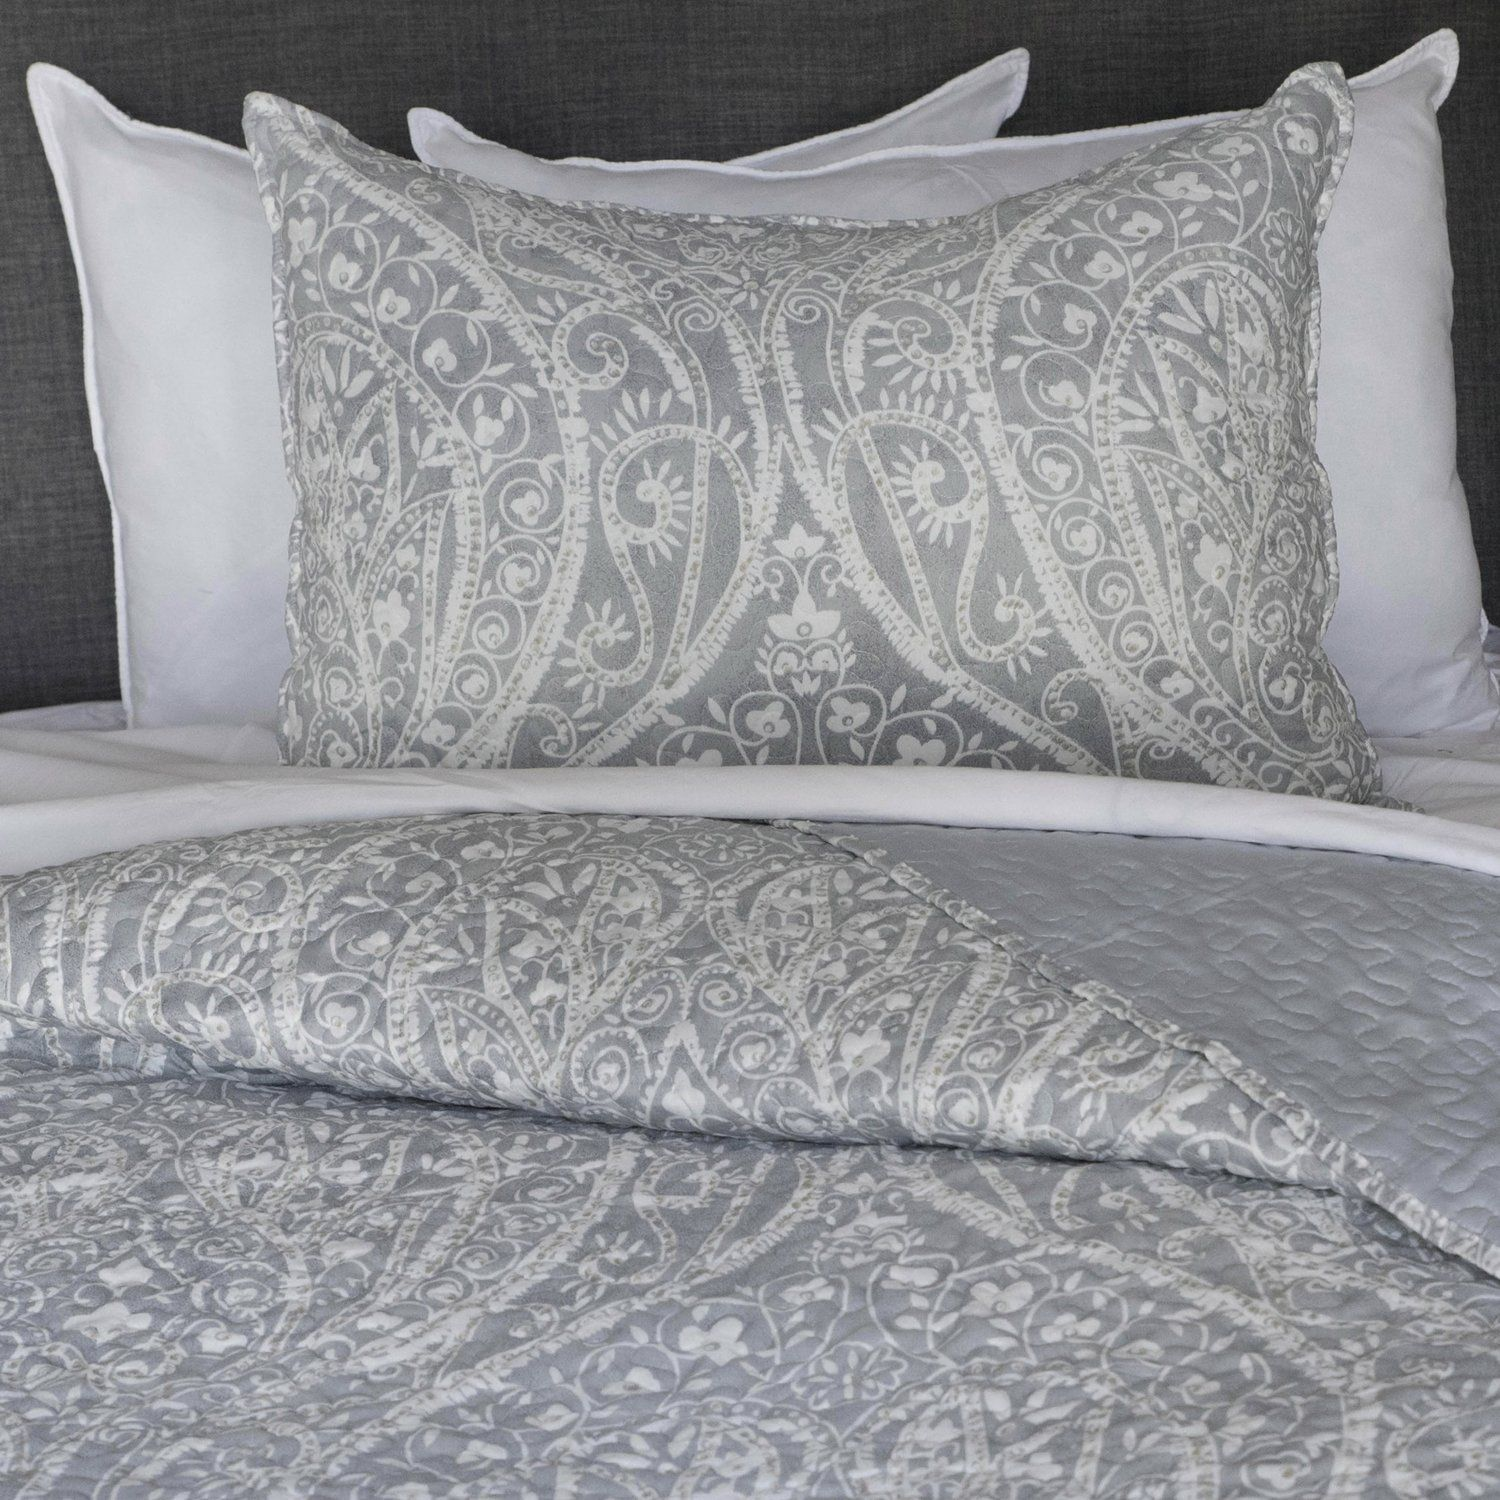 Zavaro Home Printed Paisley Lightweight Soft Microfibre Reversible Quilt Bedspread Coverlet Bed Cover Bedding Coverlet Bedding Quilted Bedspreads Quilt Bedding